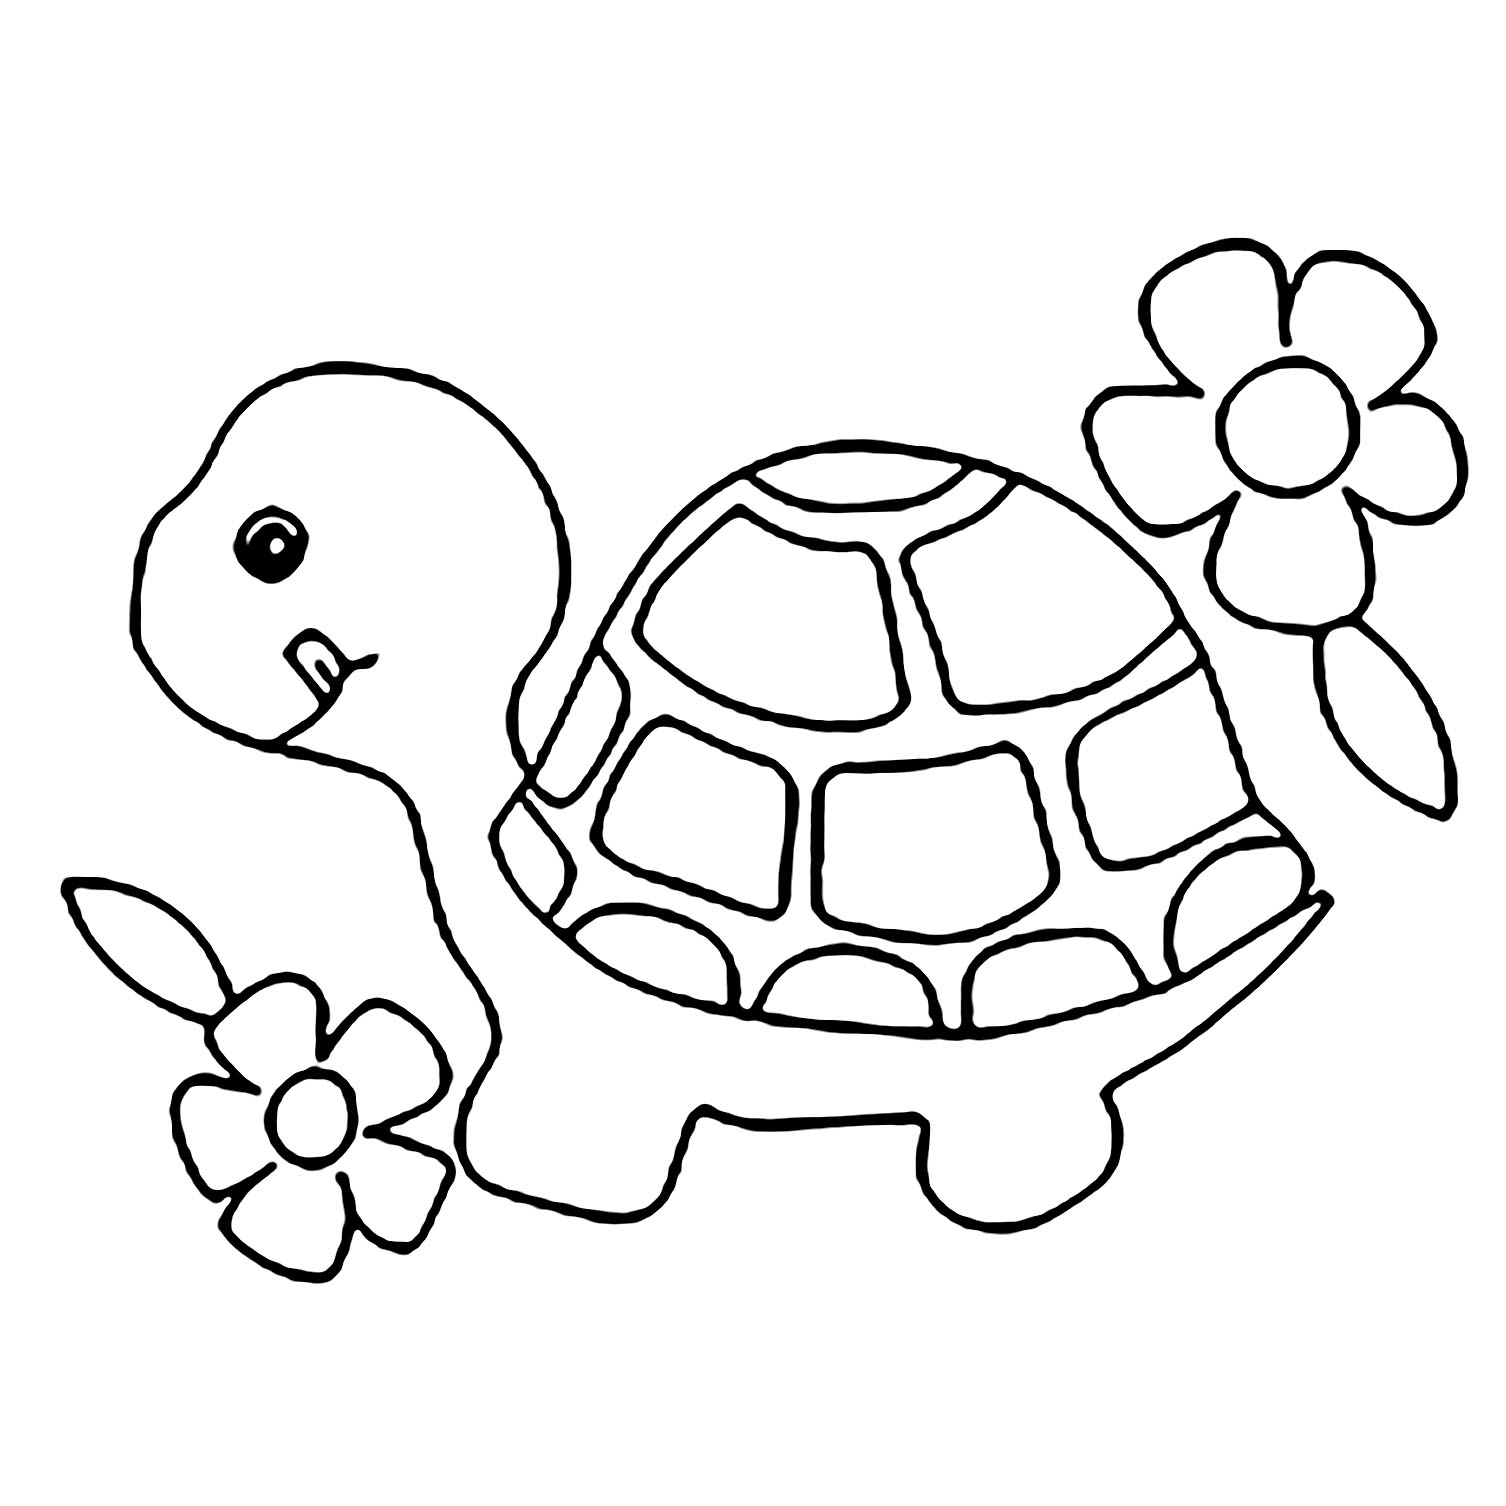 coloring pages turtle free printable turtle coloring pages for kids pages coloring turtle